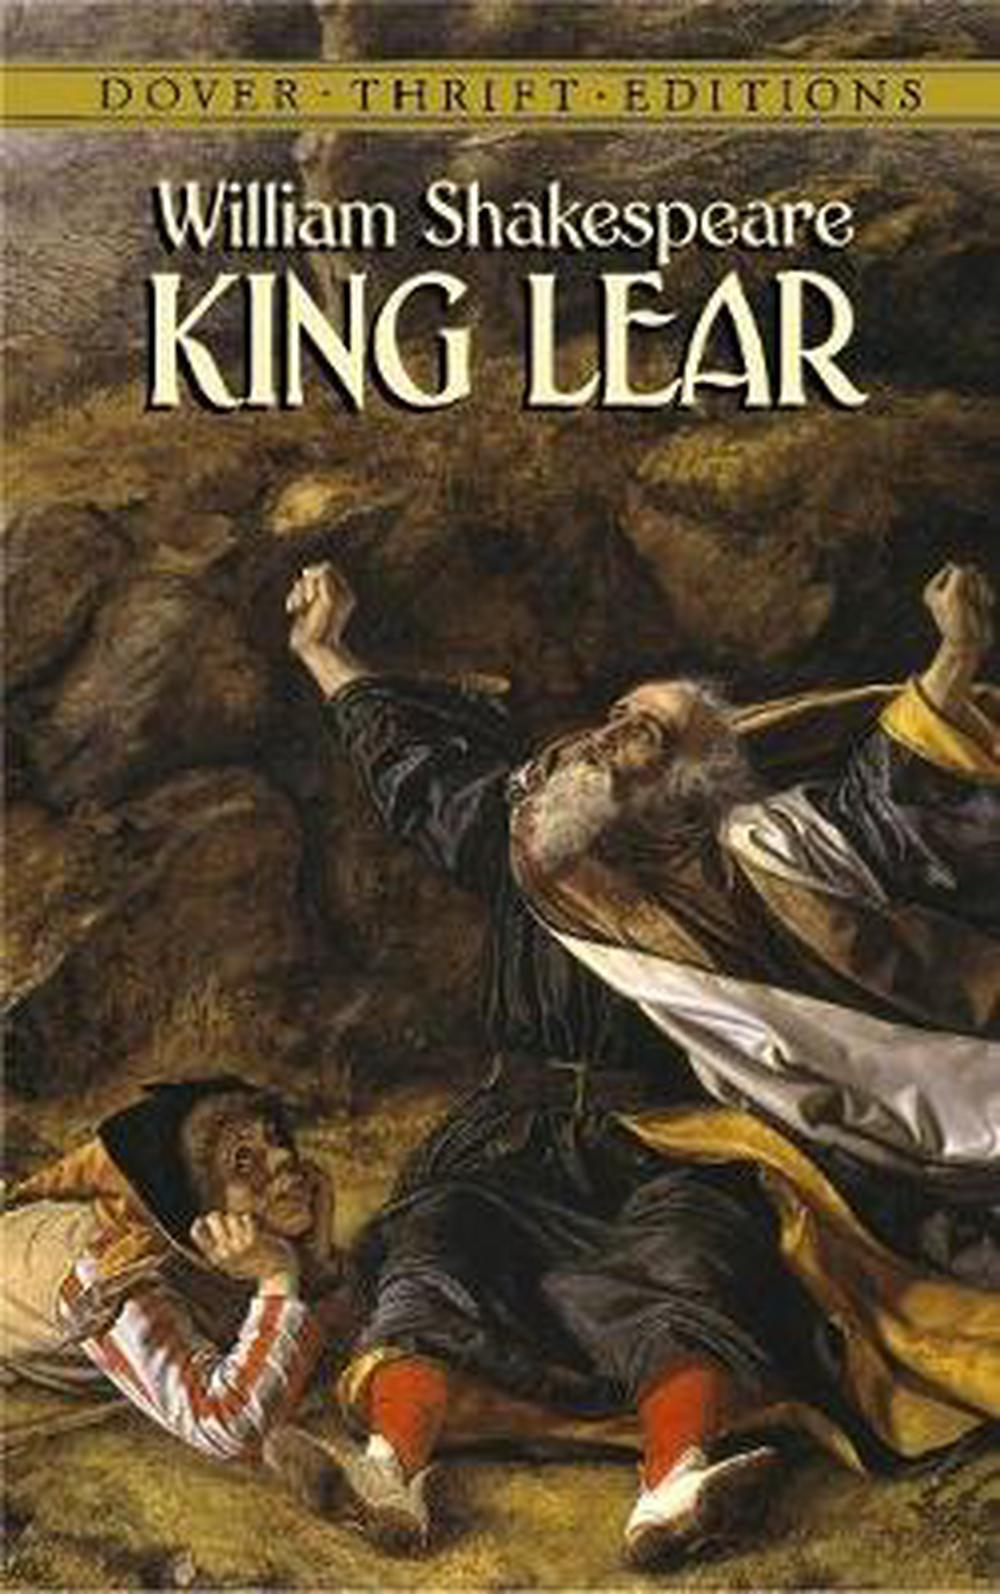 divine justice in shakespeares king lear essay Divine justice in king lear essay divine justice in king lear essay transcript of justice we provide free model essays on shakespeare: king  read more king lear.